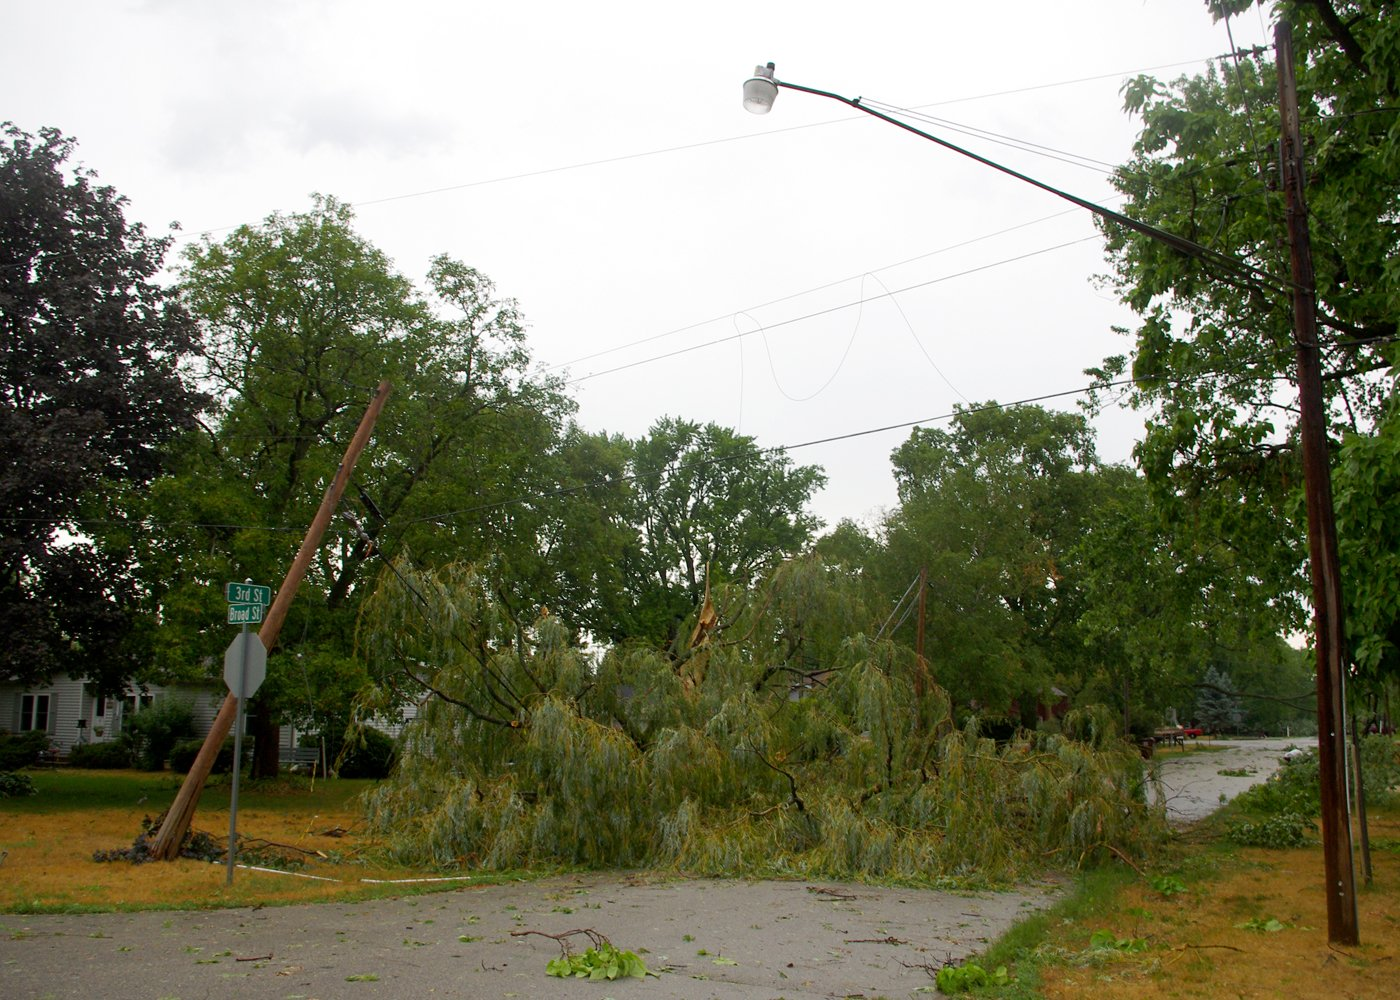 A large tree was snapped off and took down electrical lines at the intersection of Third and Broad St. in Roscoe. Photo Courtesy: Harlem-Roscoe Fire Photographer Sheryl Drost